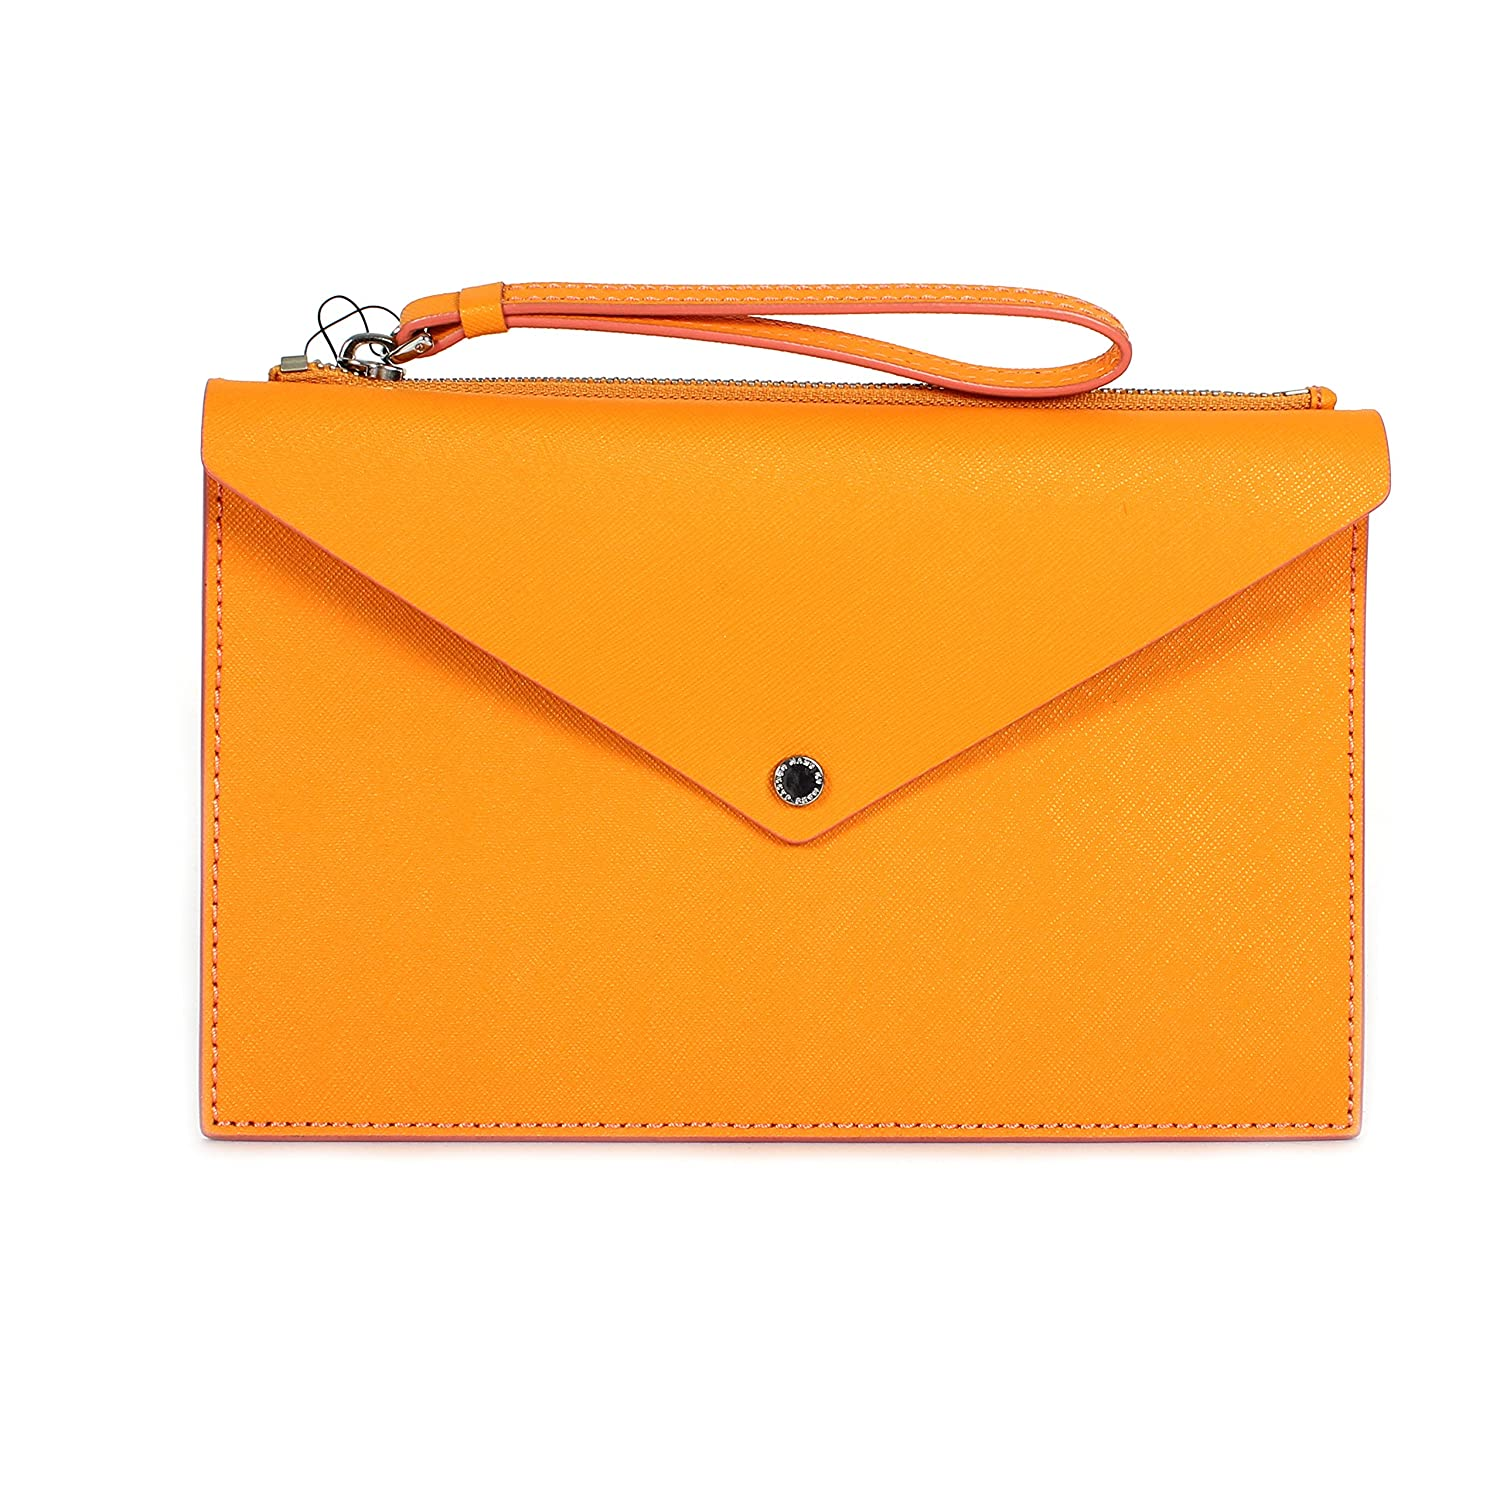 Marc by Marc Jacobs Metropoli - Large Leather Envelope Pouch Sundance Orange